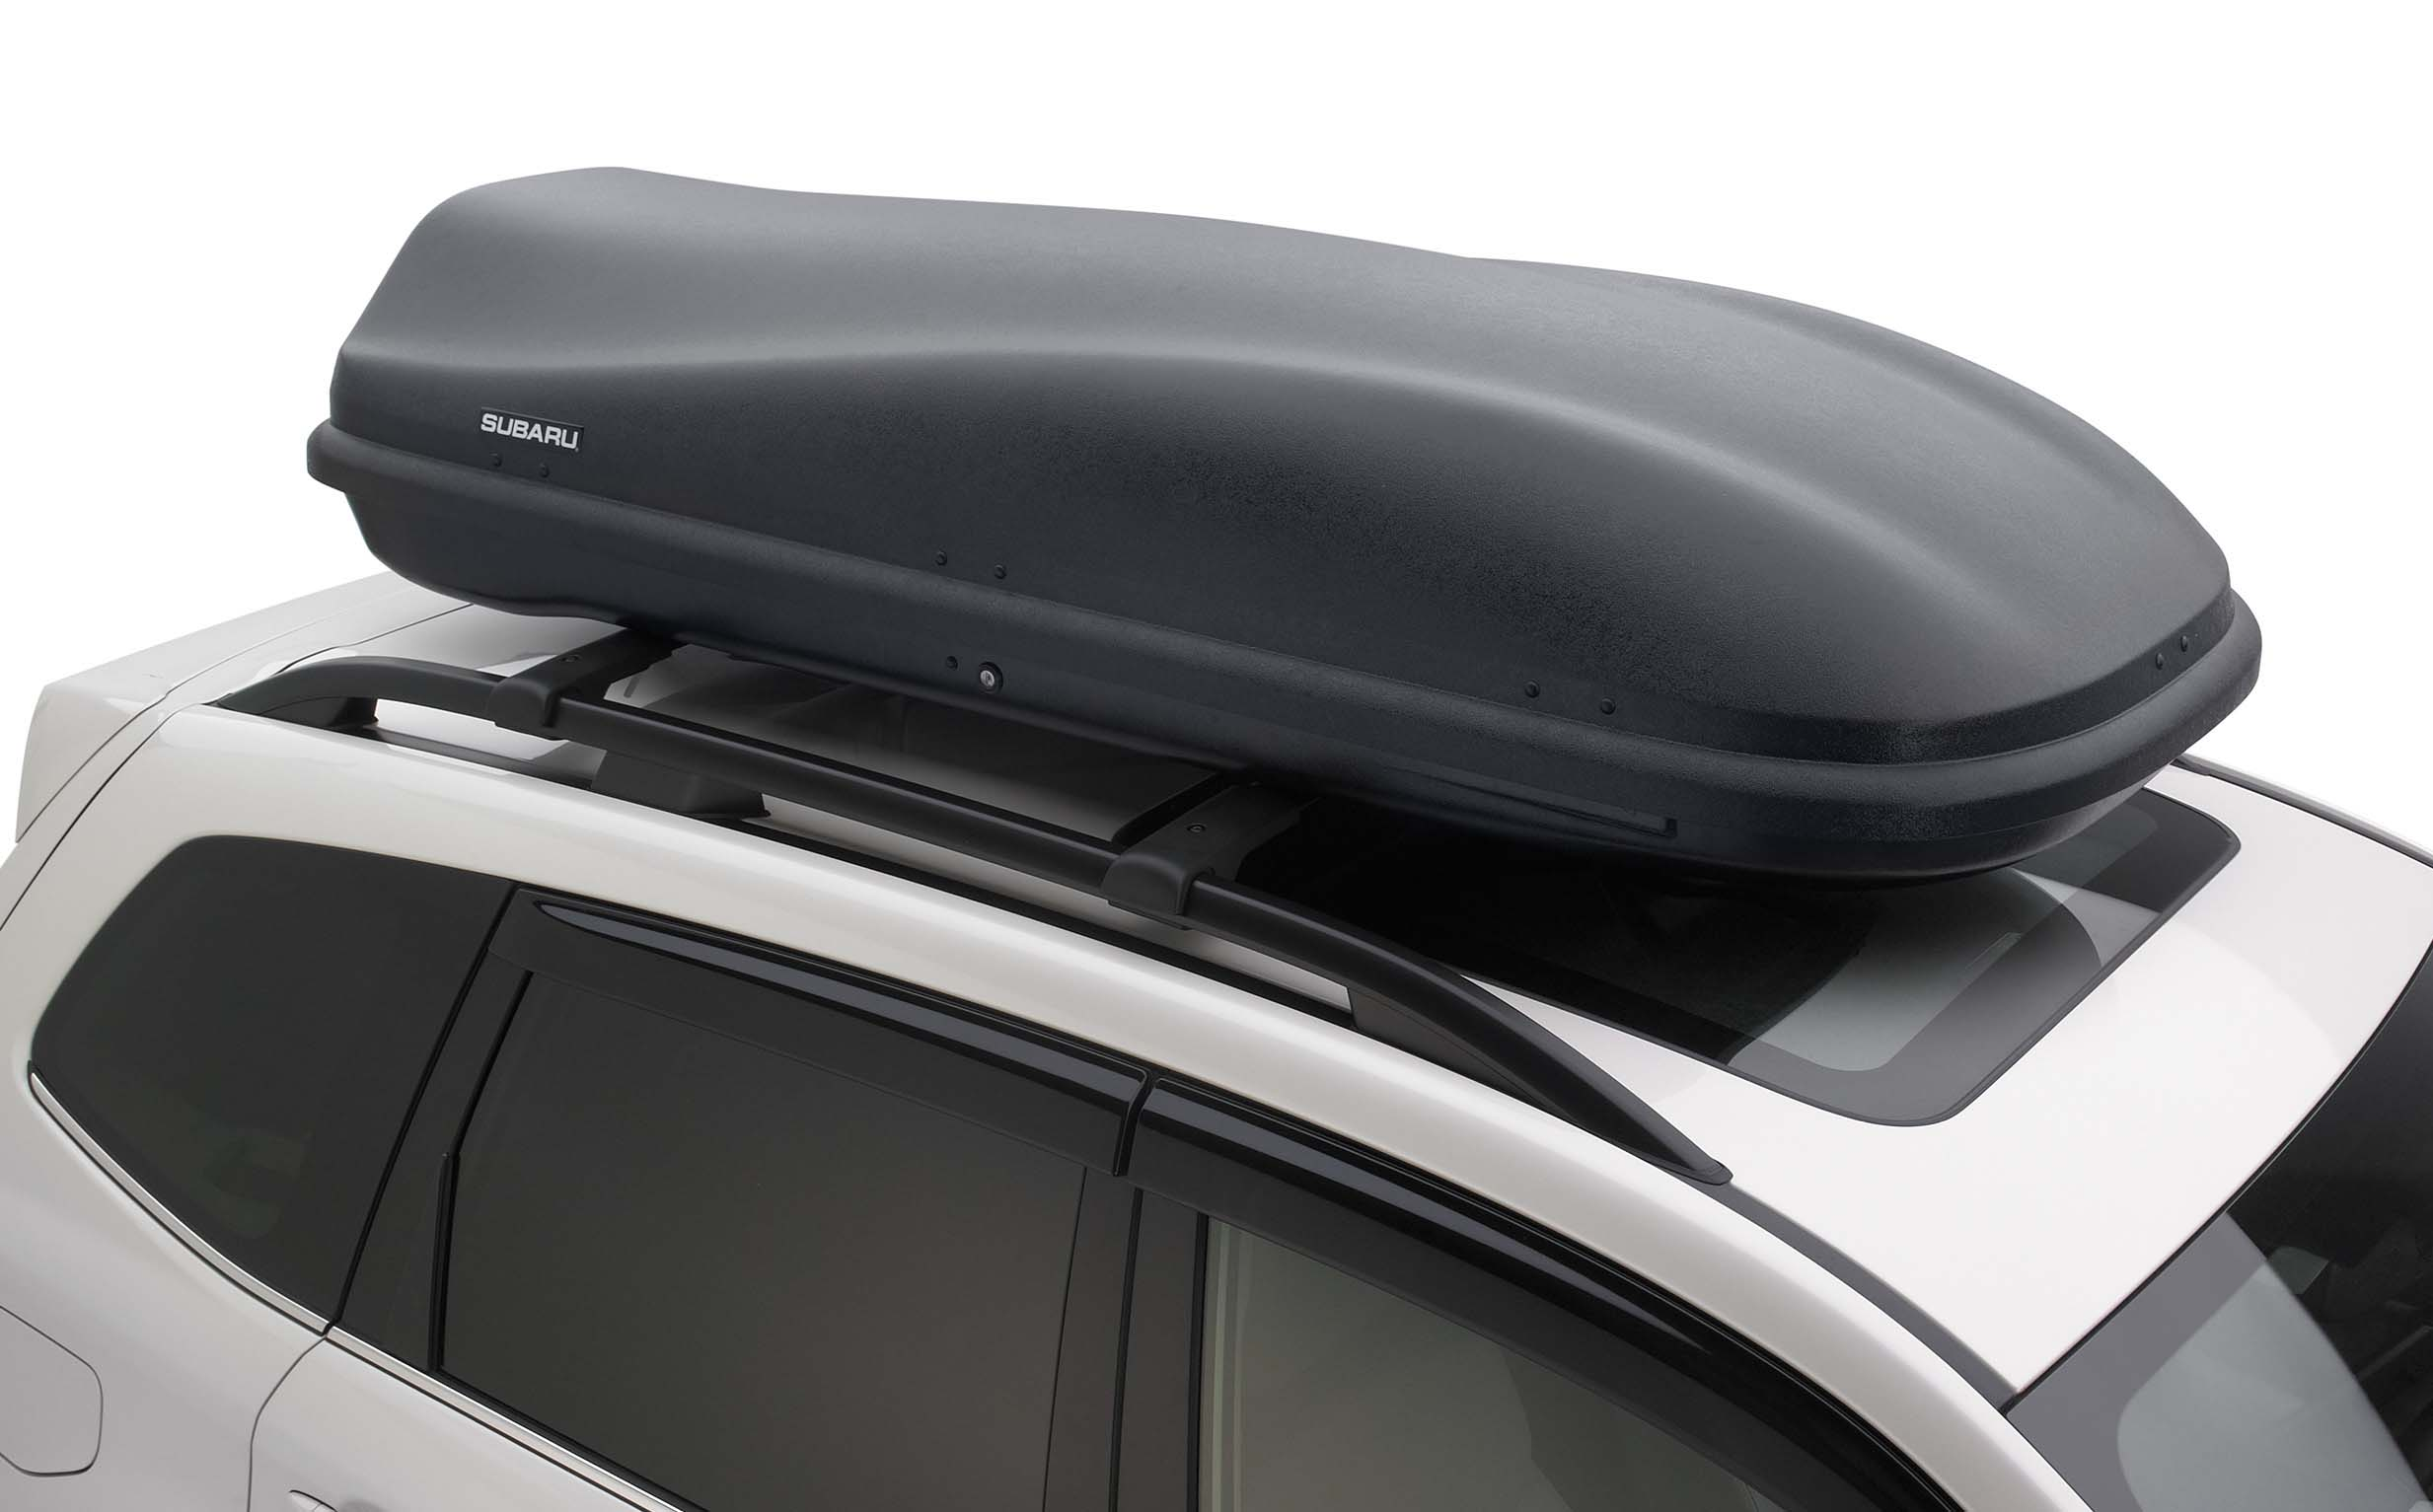 2016 subaru outback roof cargo carrier extended pb001027. Black Bedroom Furniture Sets. Home Design Ideas